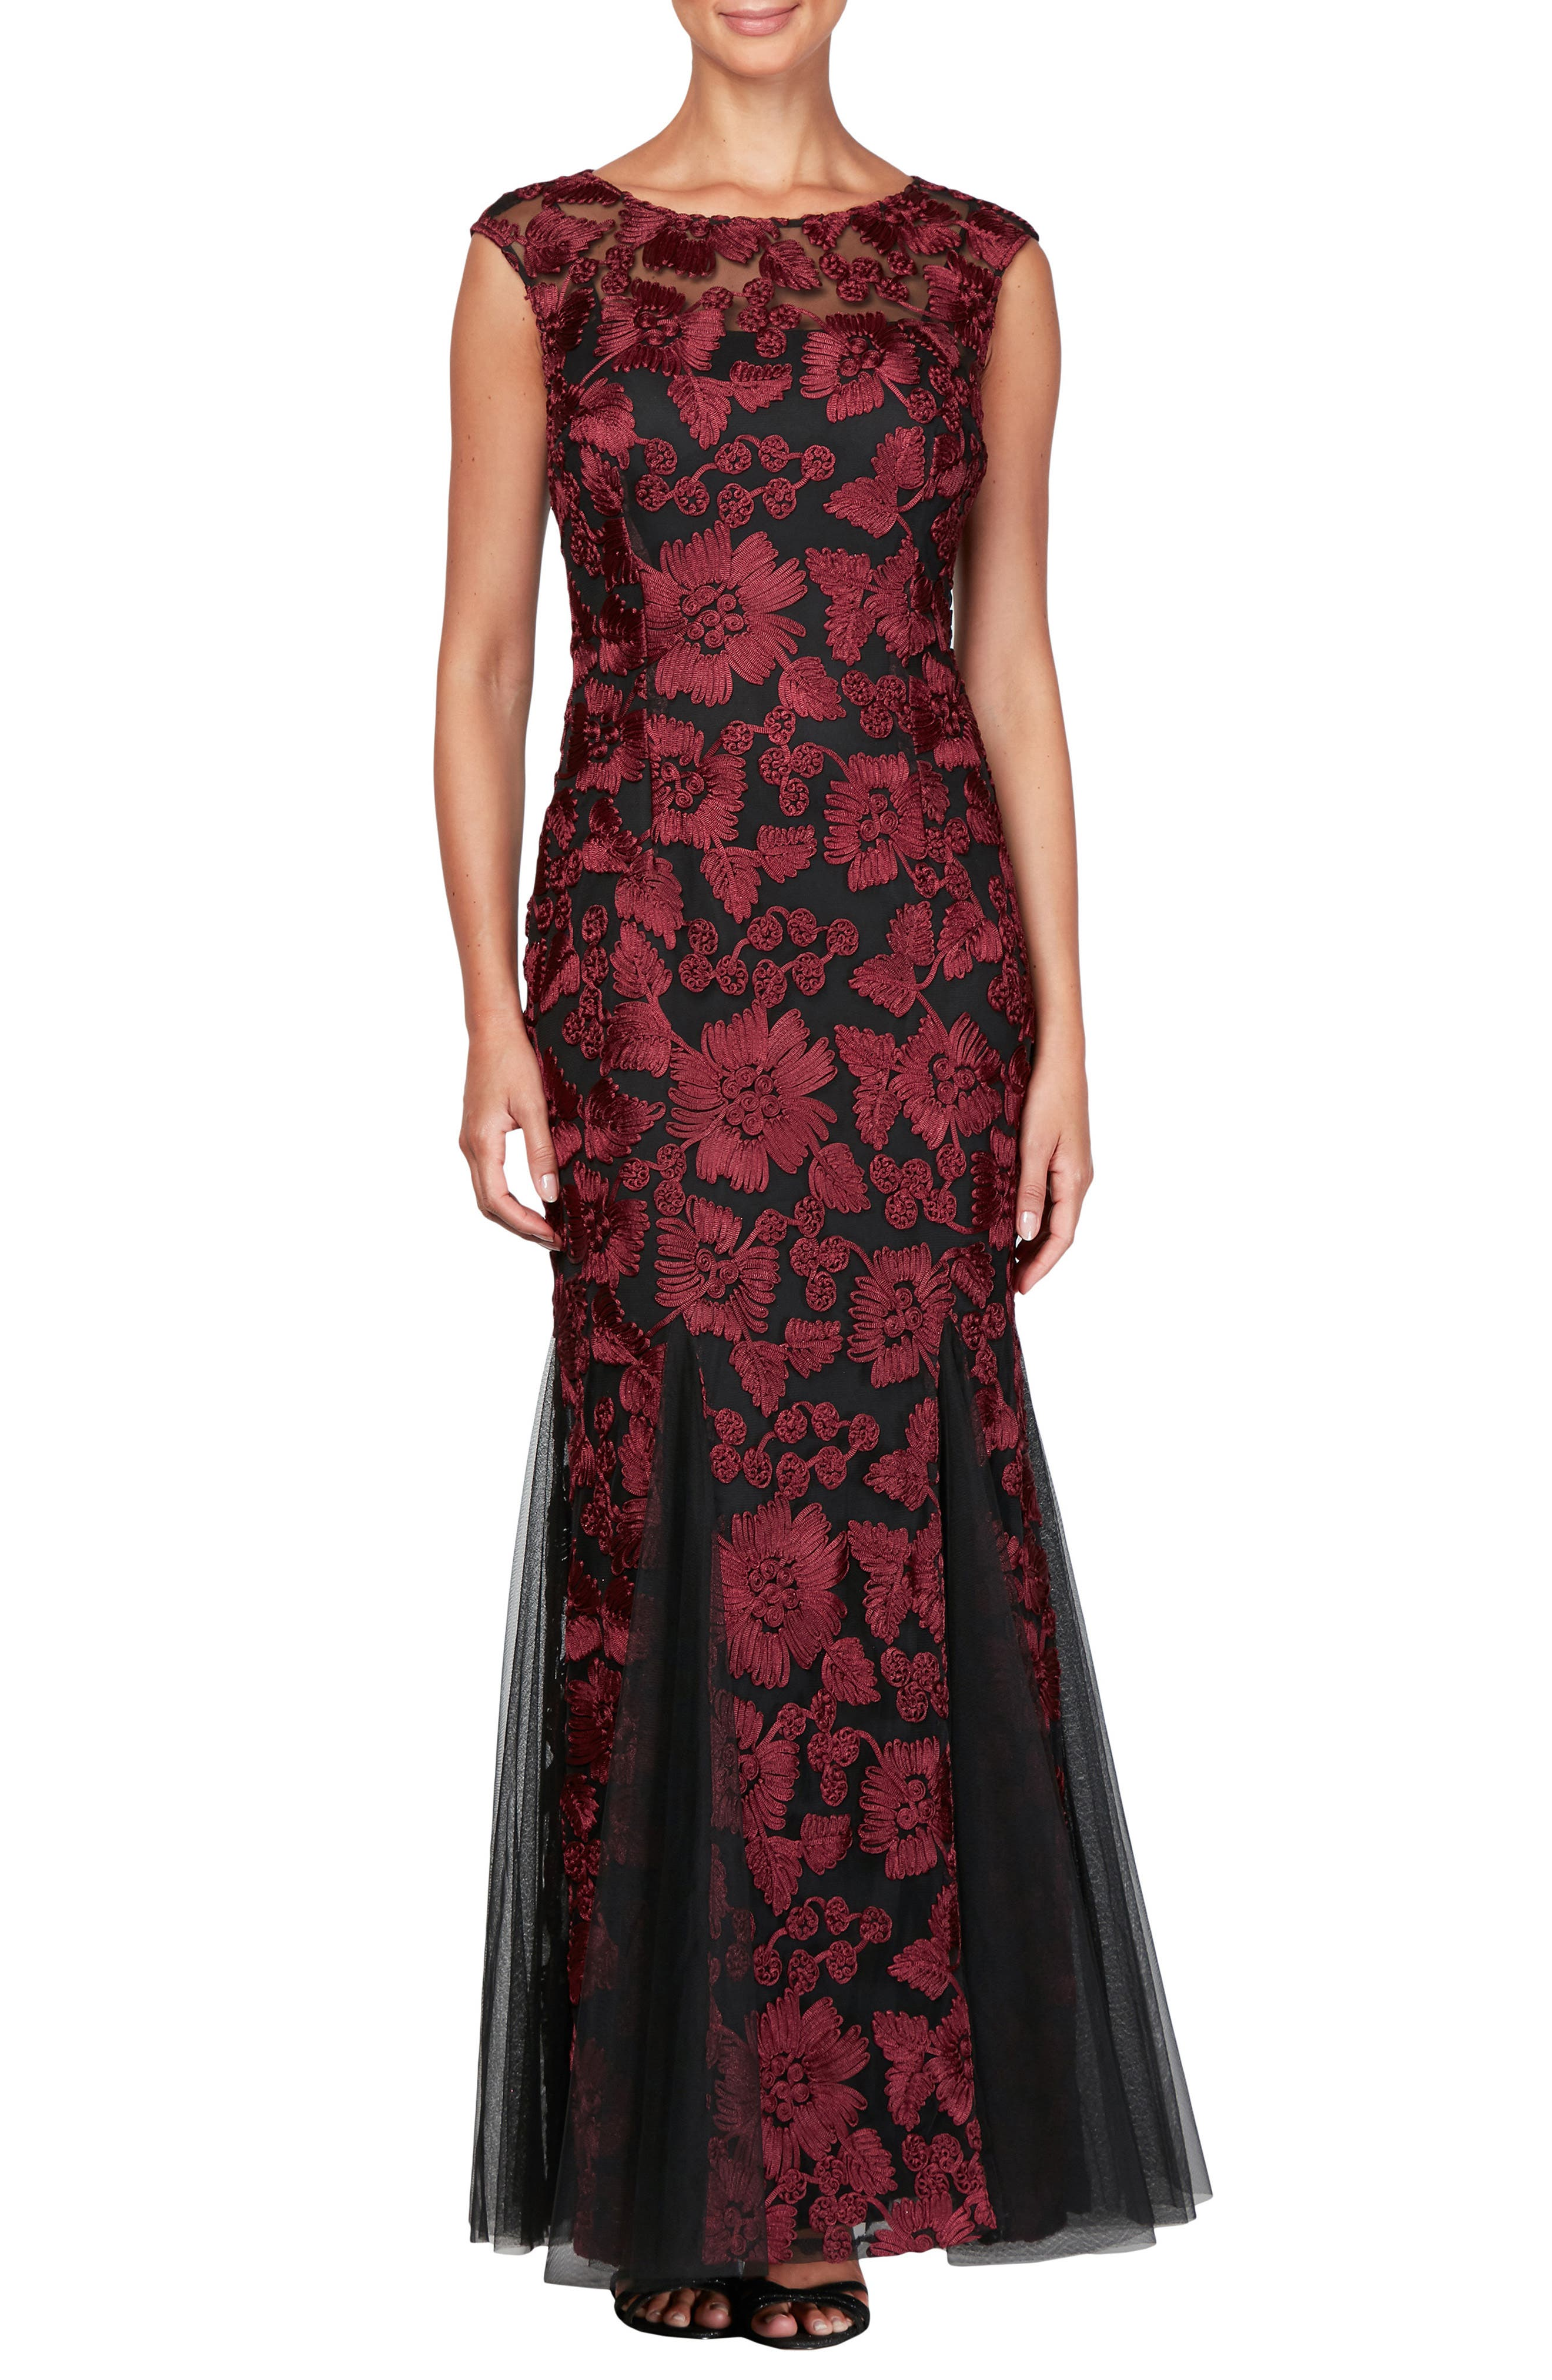 ALEX EVENINGS Tulle Mermaid Gown, Main, color, 001